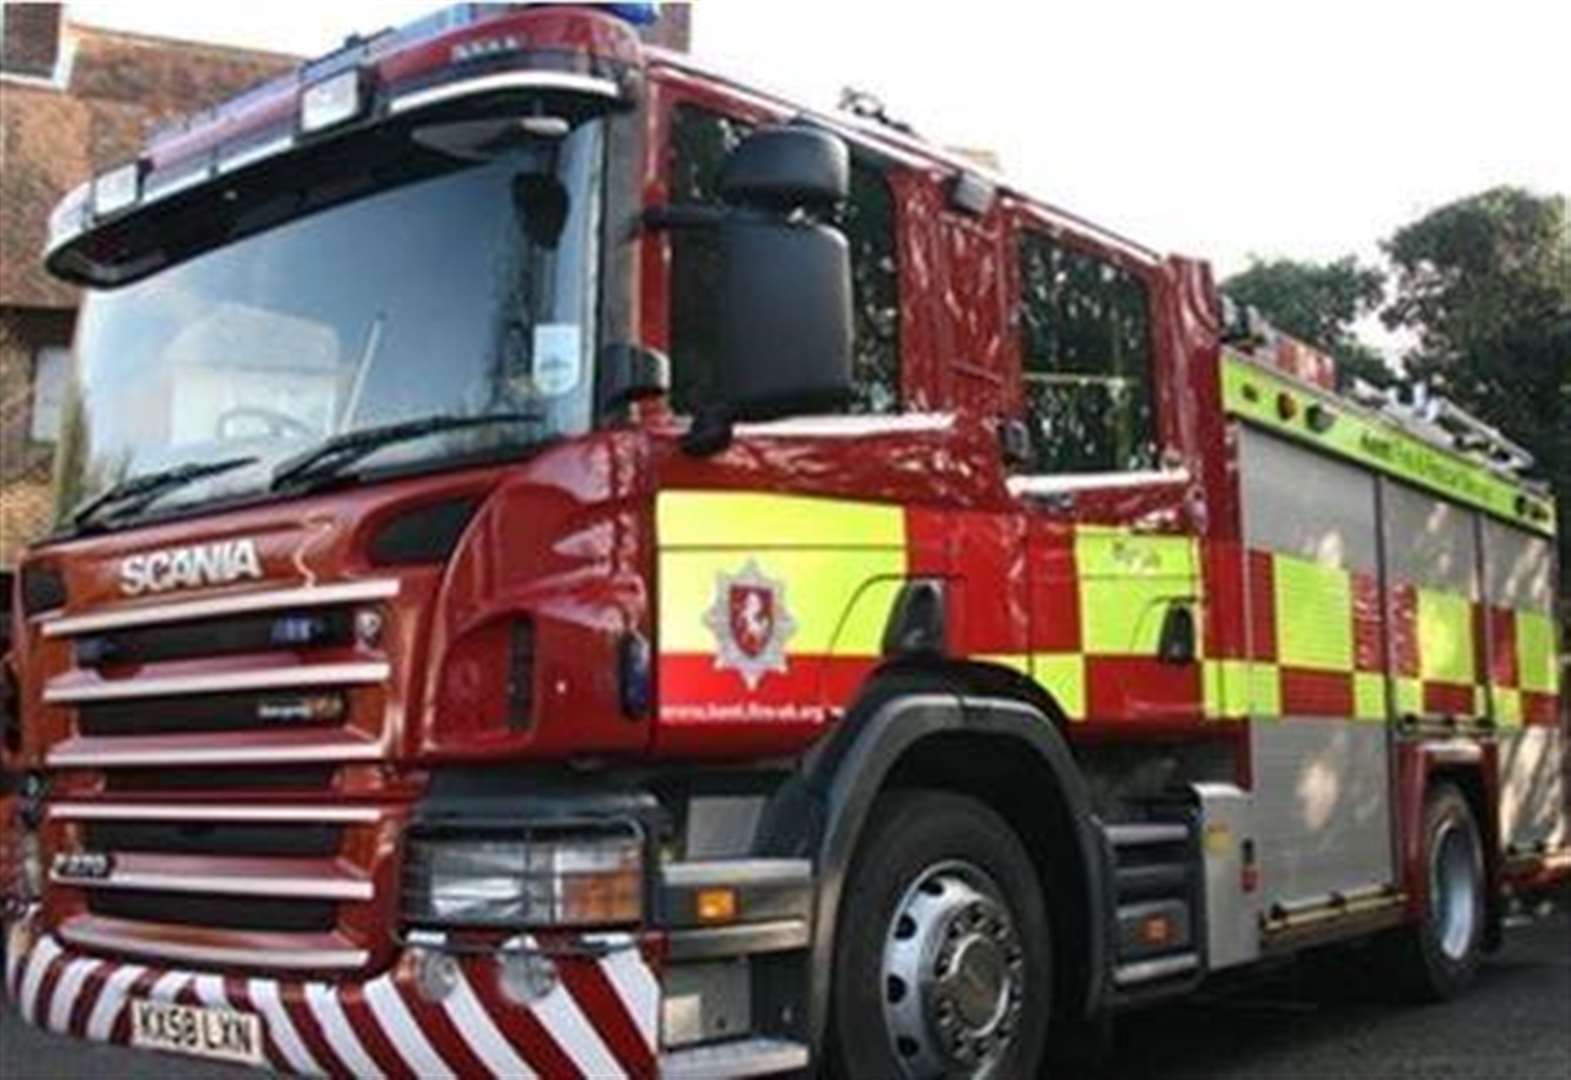 Fire engines rushed to the scene of three sheds alight this afternoon.